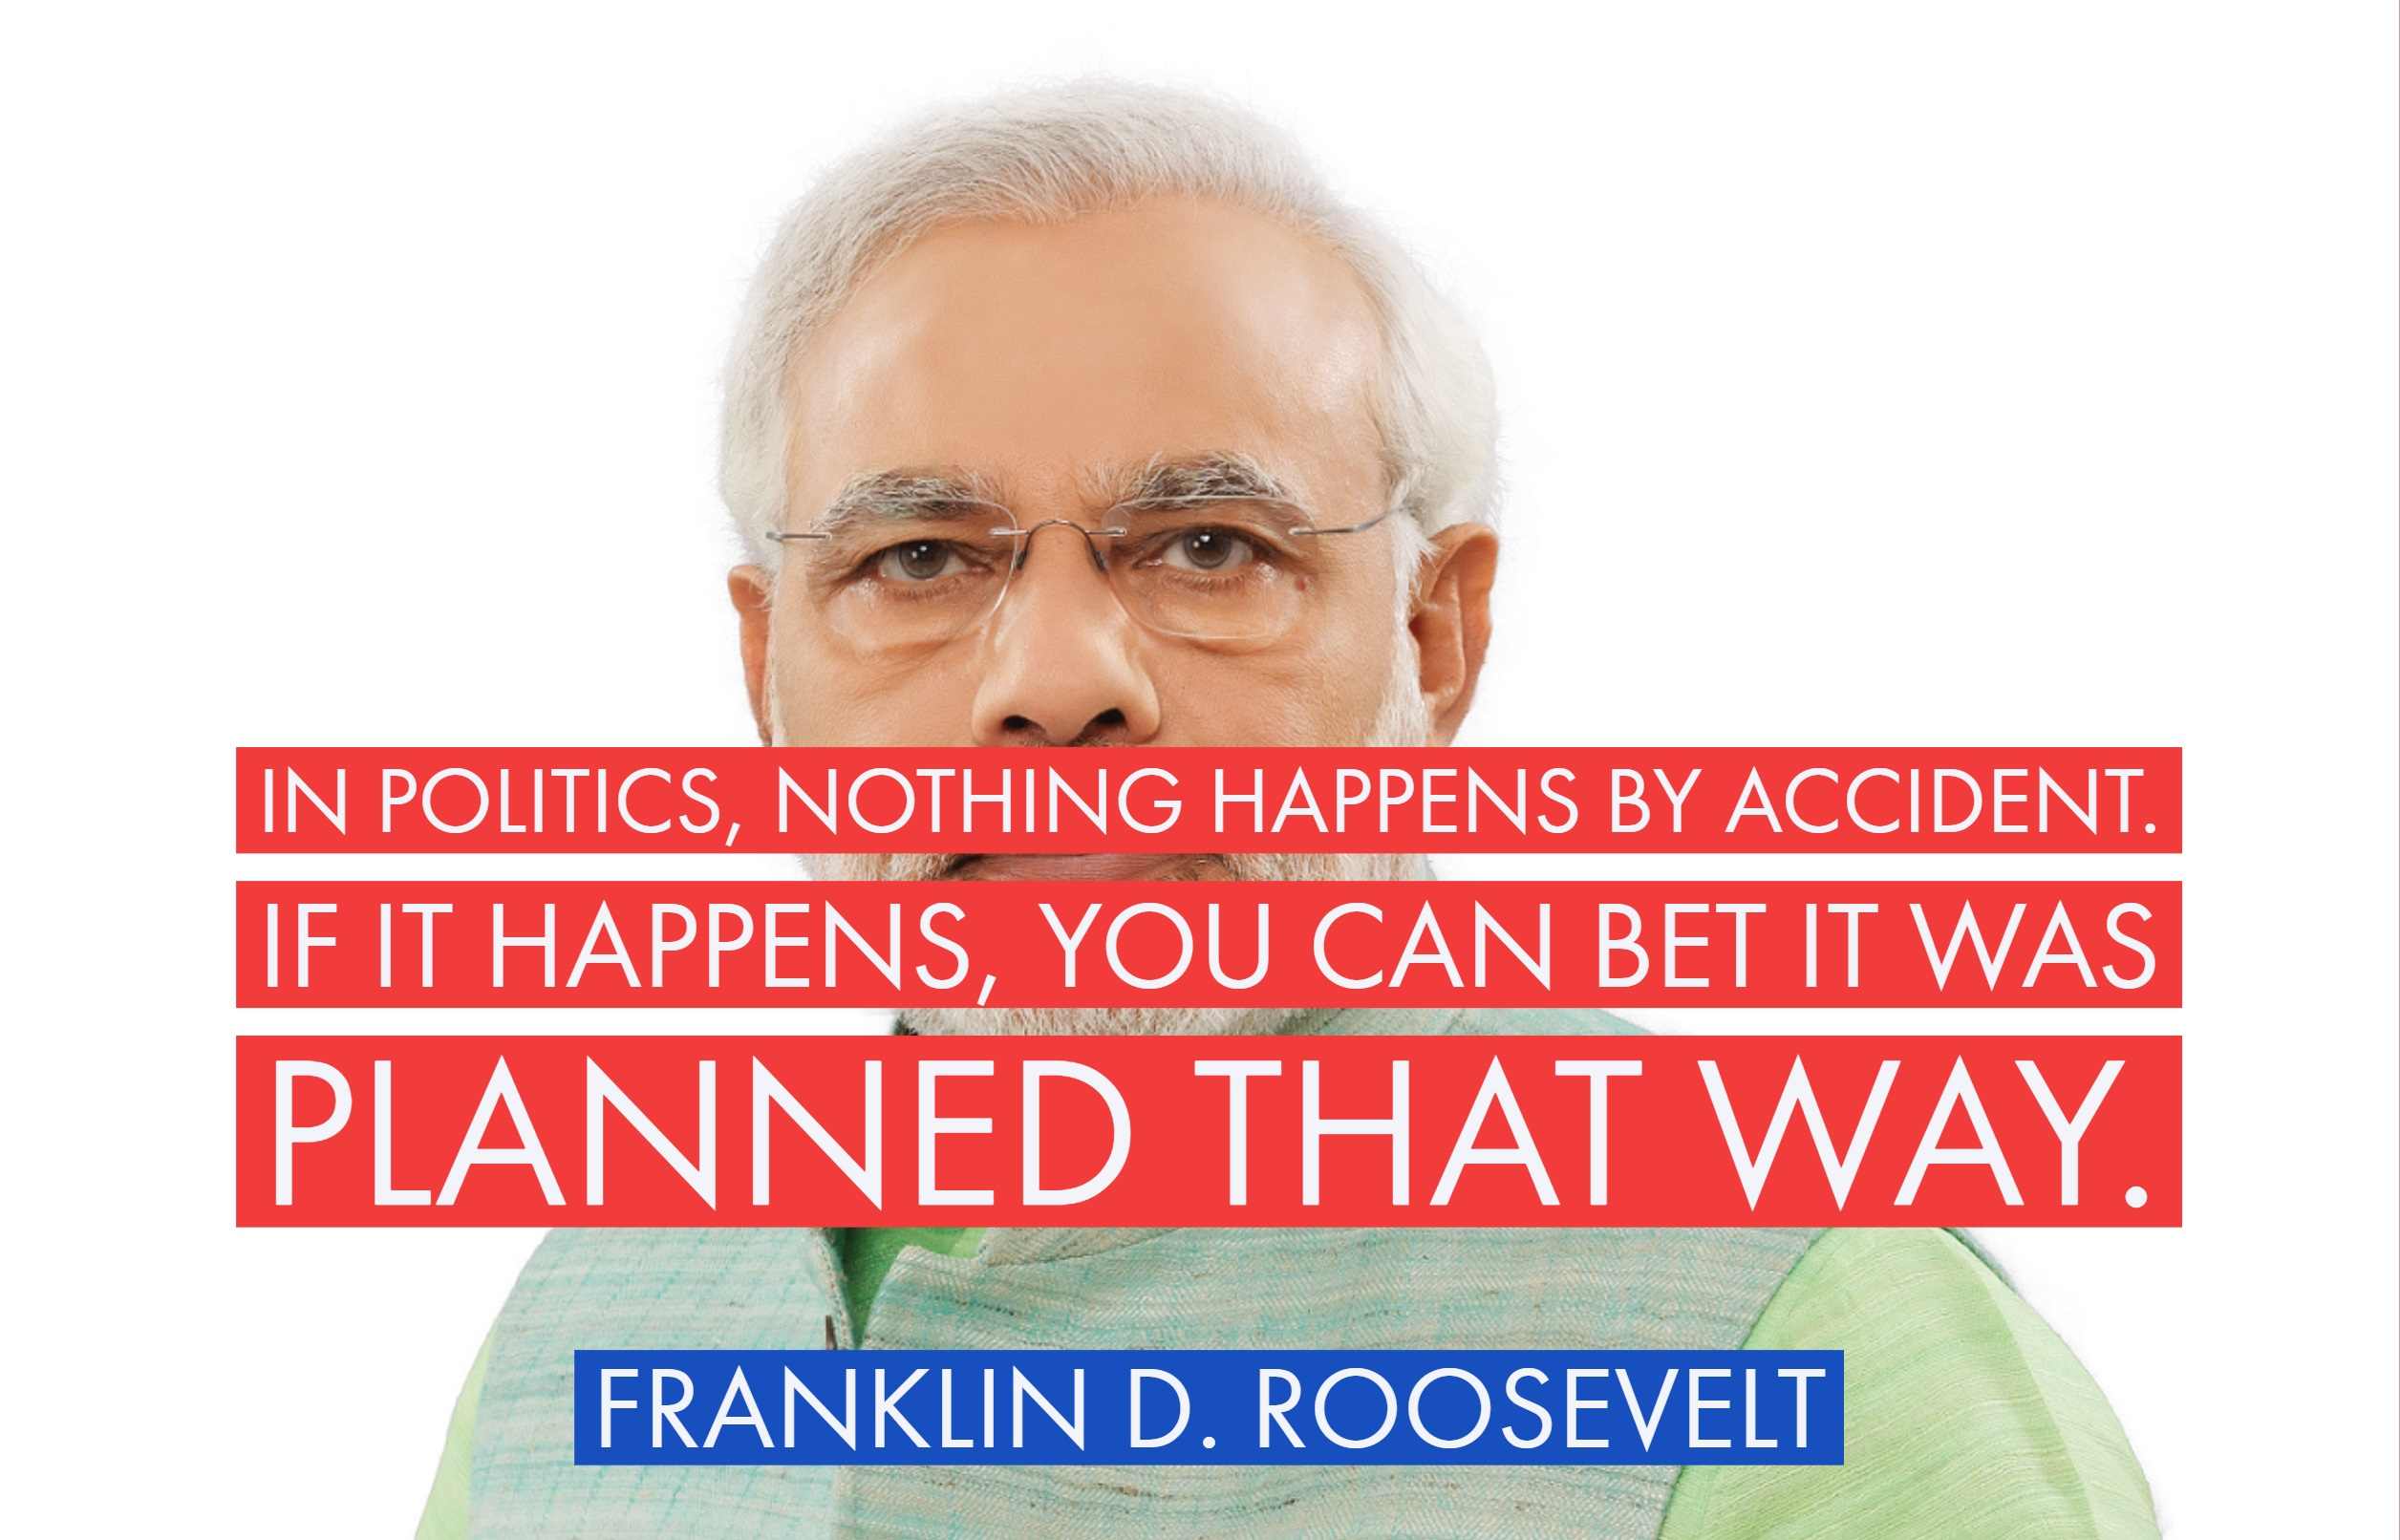 In politics, nothing happens by accident. If it happens, you can bet it was planned that way. – Franklin D. Roosevelt [2512×1612]